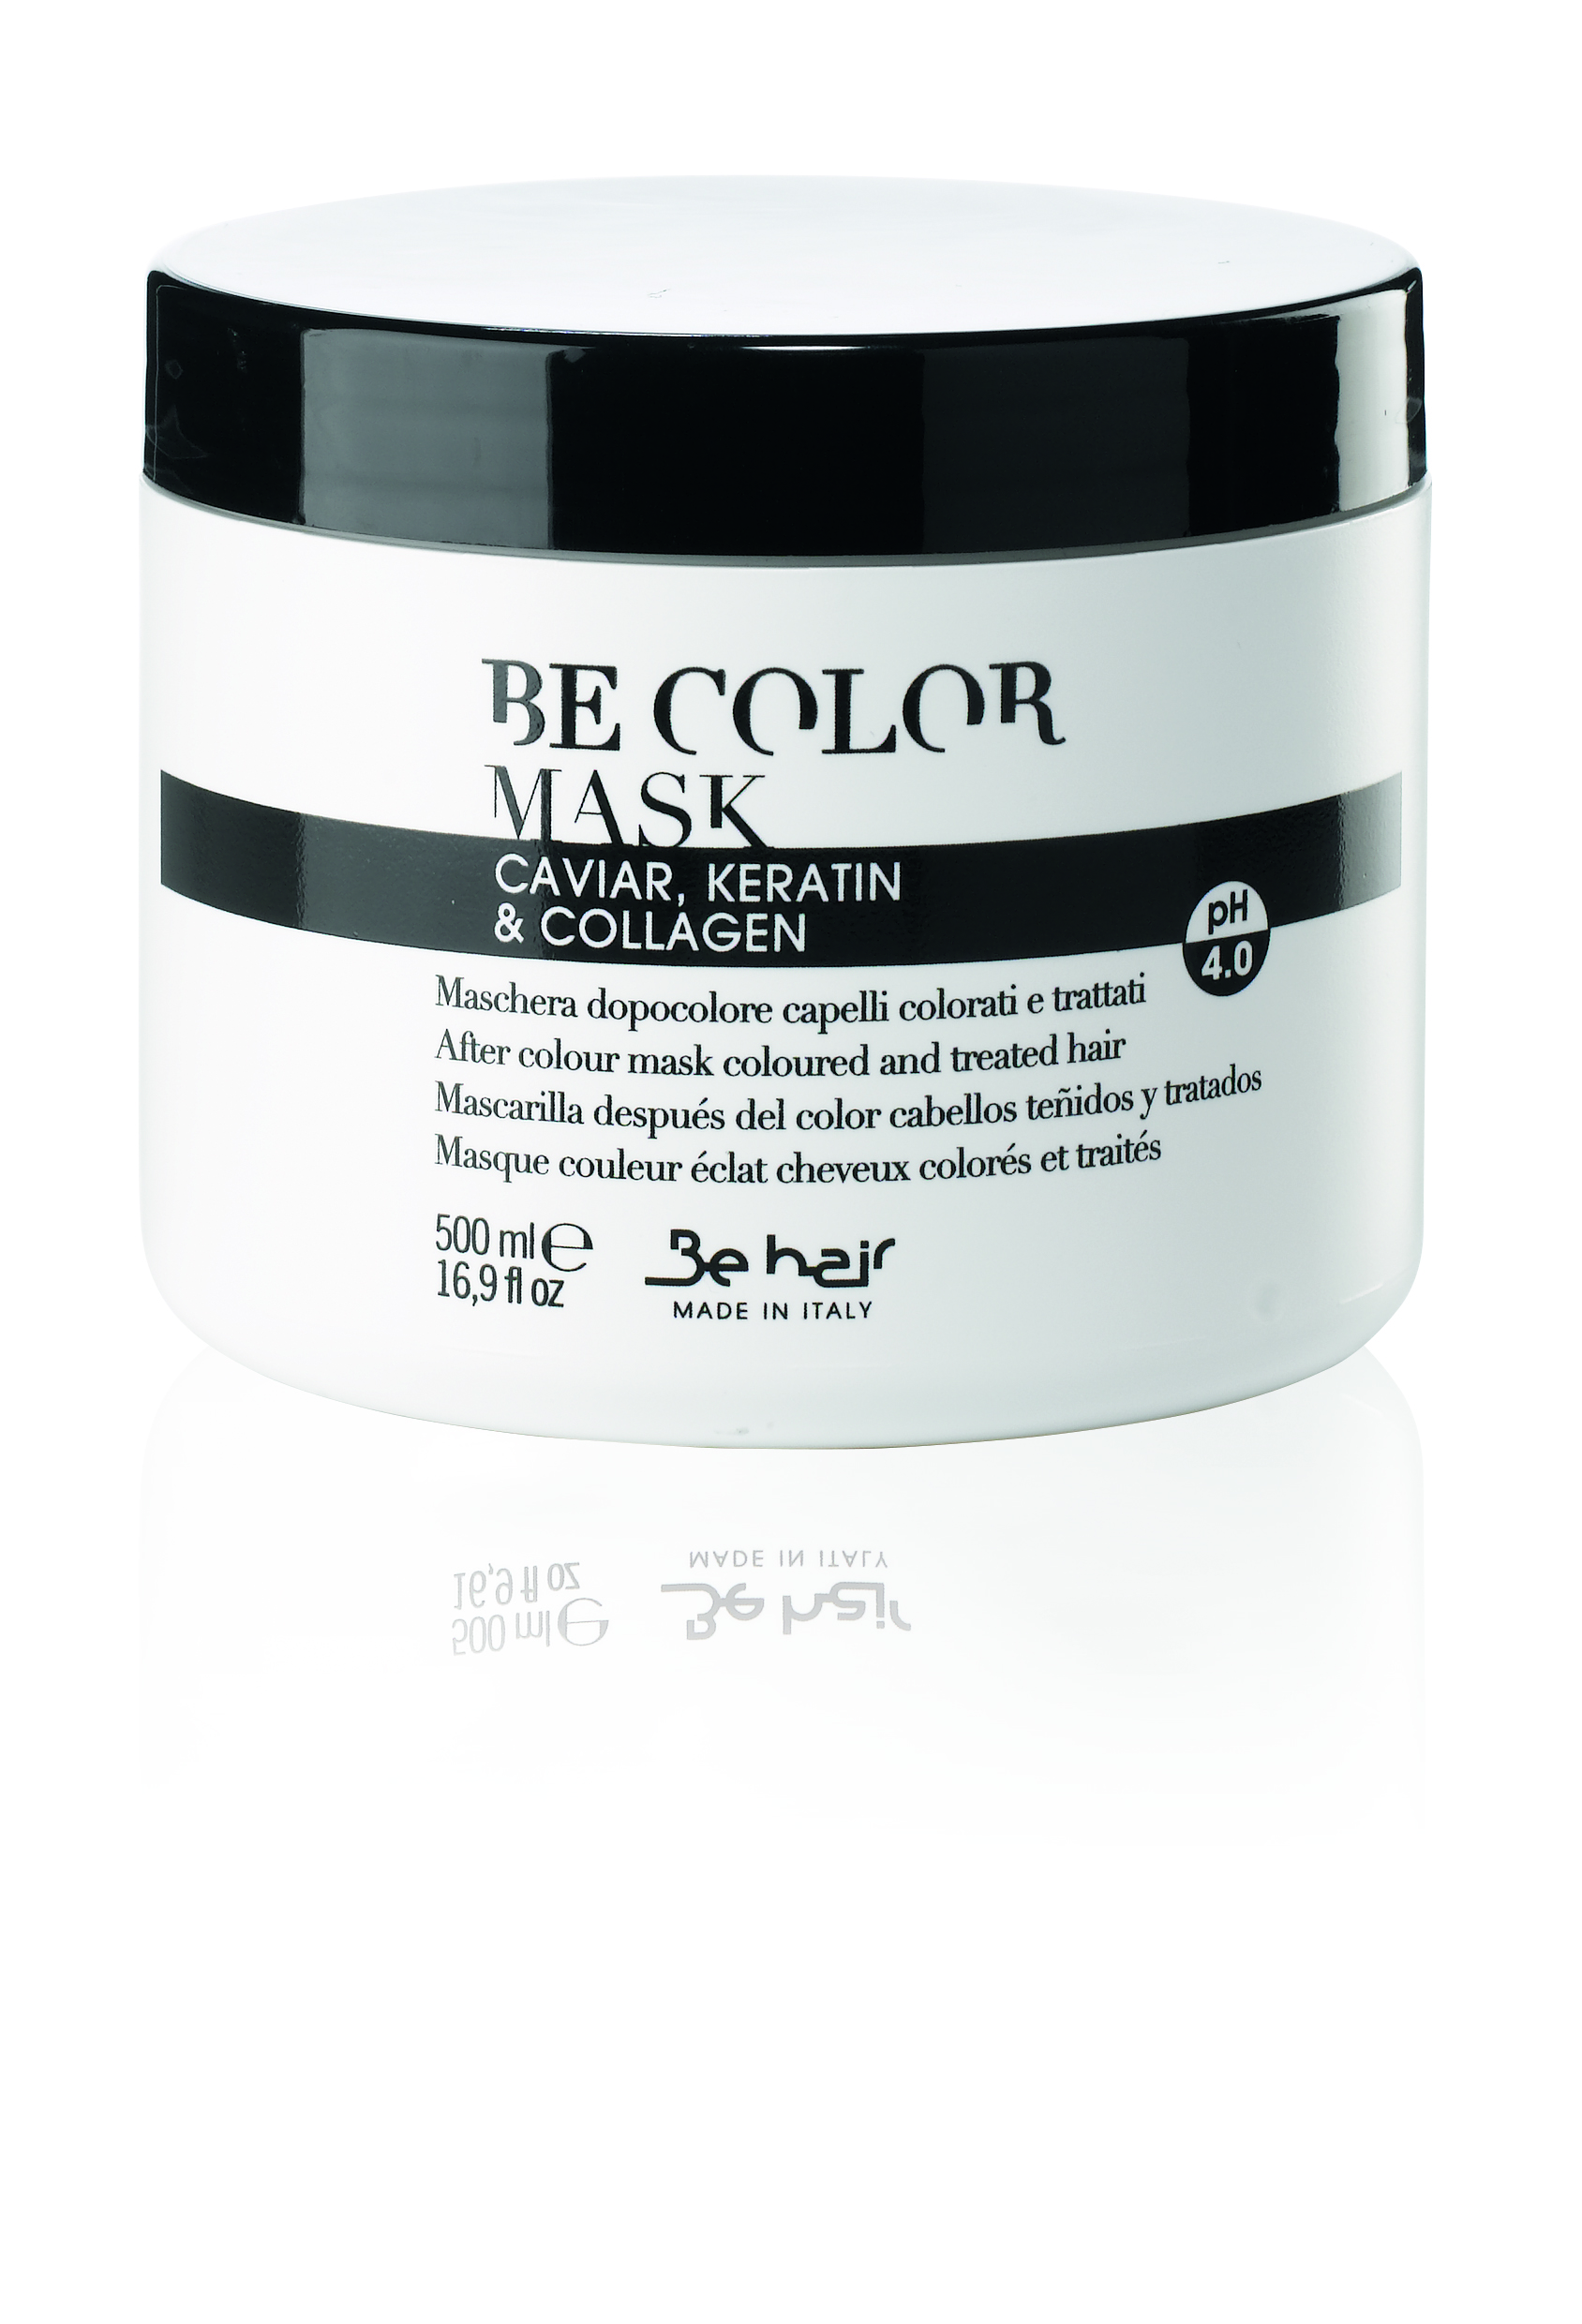 Be Color Mask